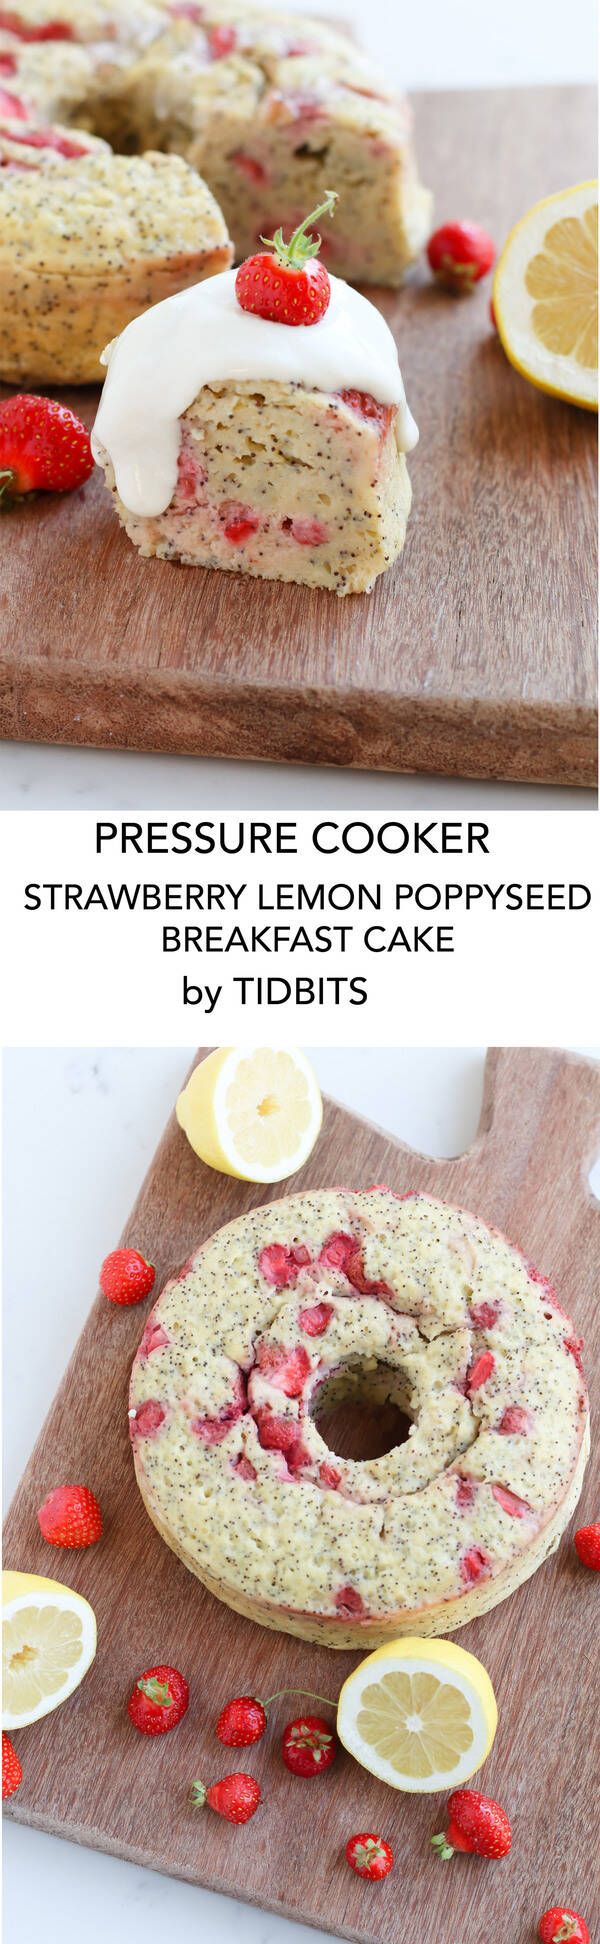 Pressure Cooker Strawberry Lemon Poppyseed Breakfast Cake is a bright, whole grain, high protein breakfast to start your day off right!